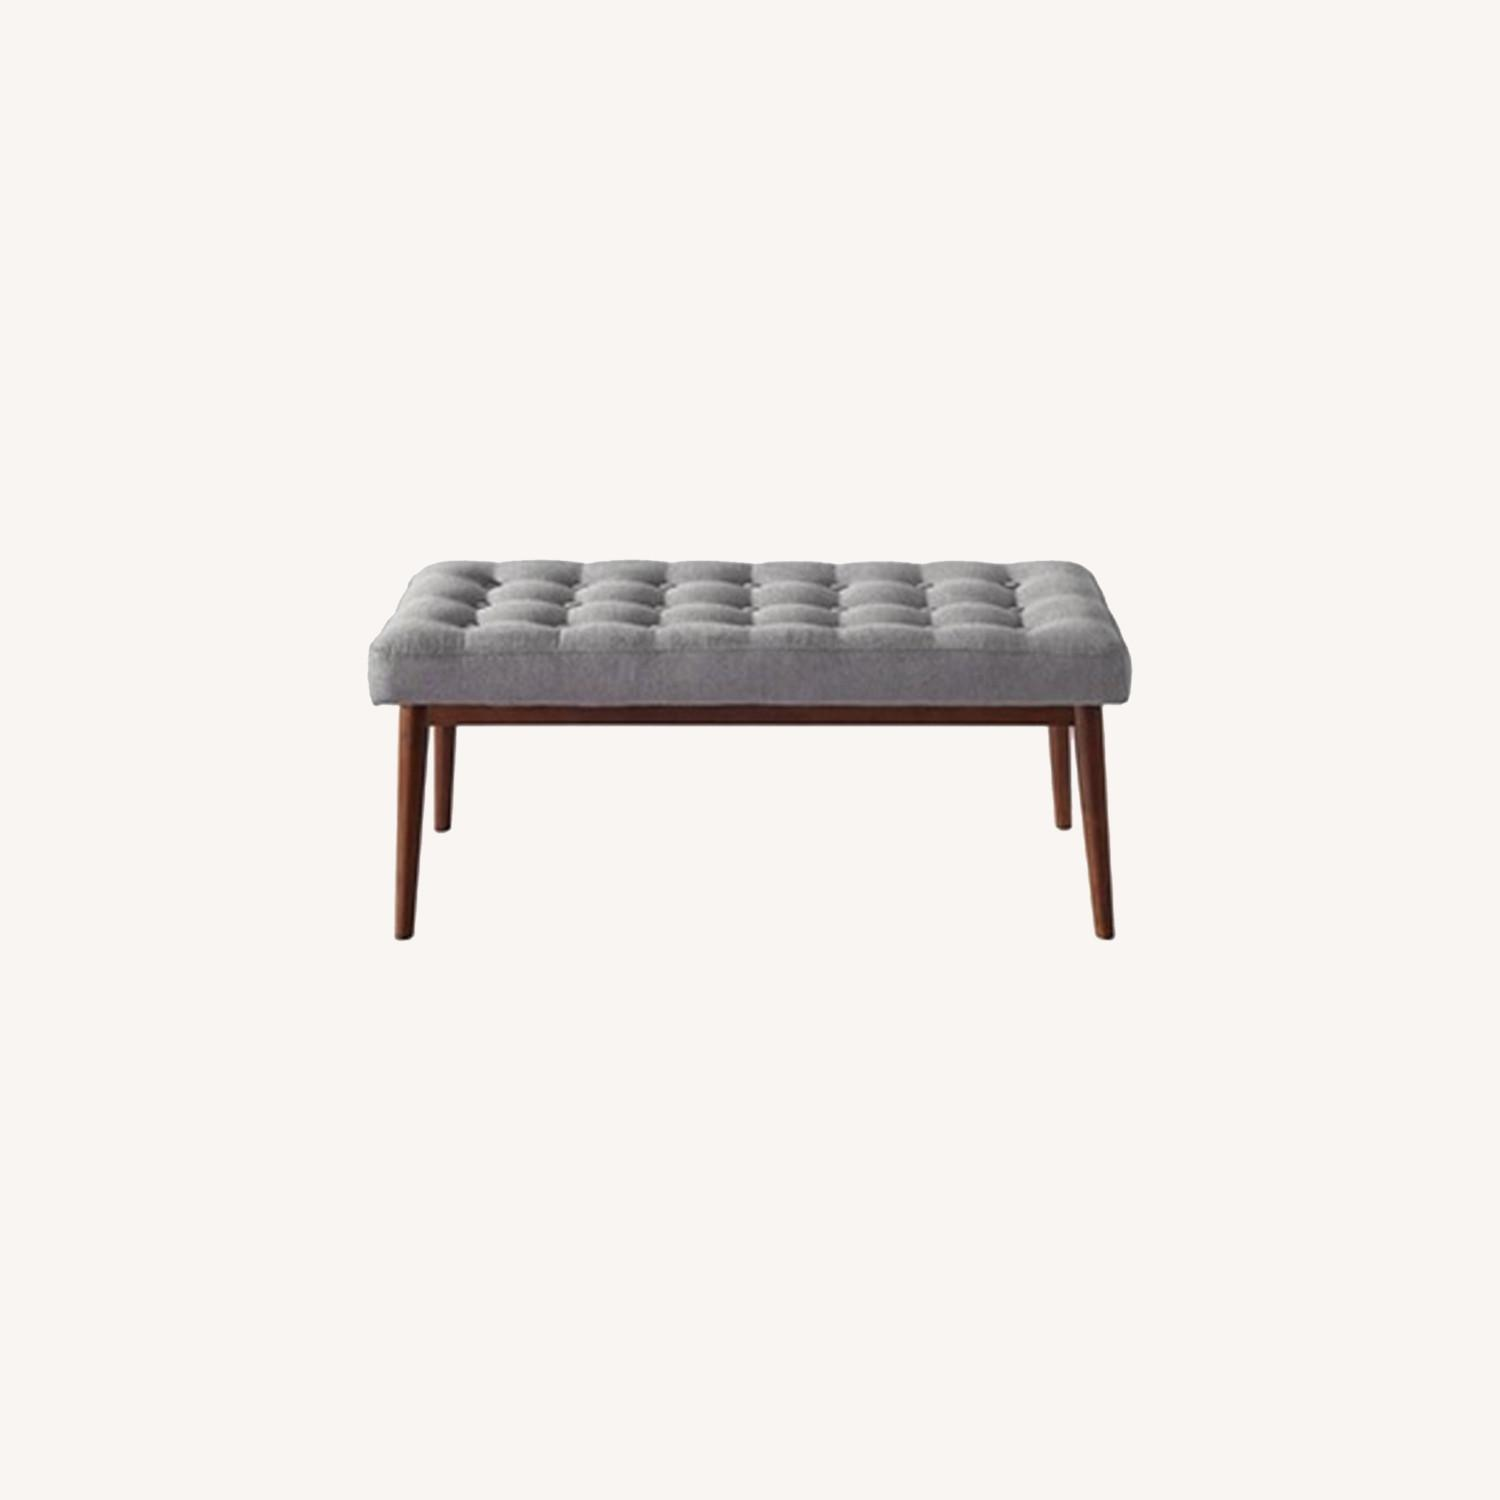 Bench In Gray Cotton Crafted W/ Beech Wood Base - image-4